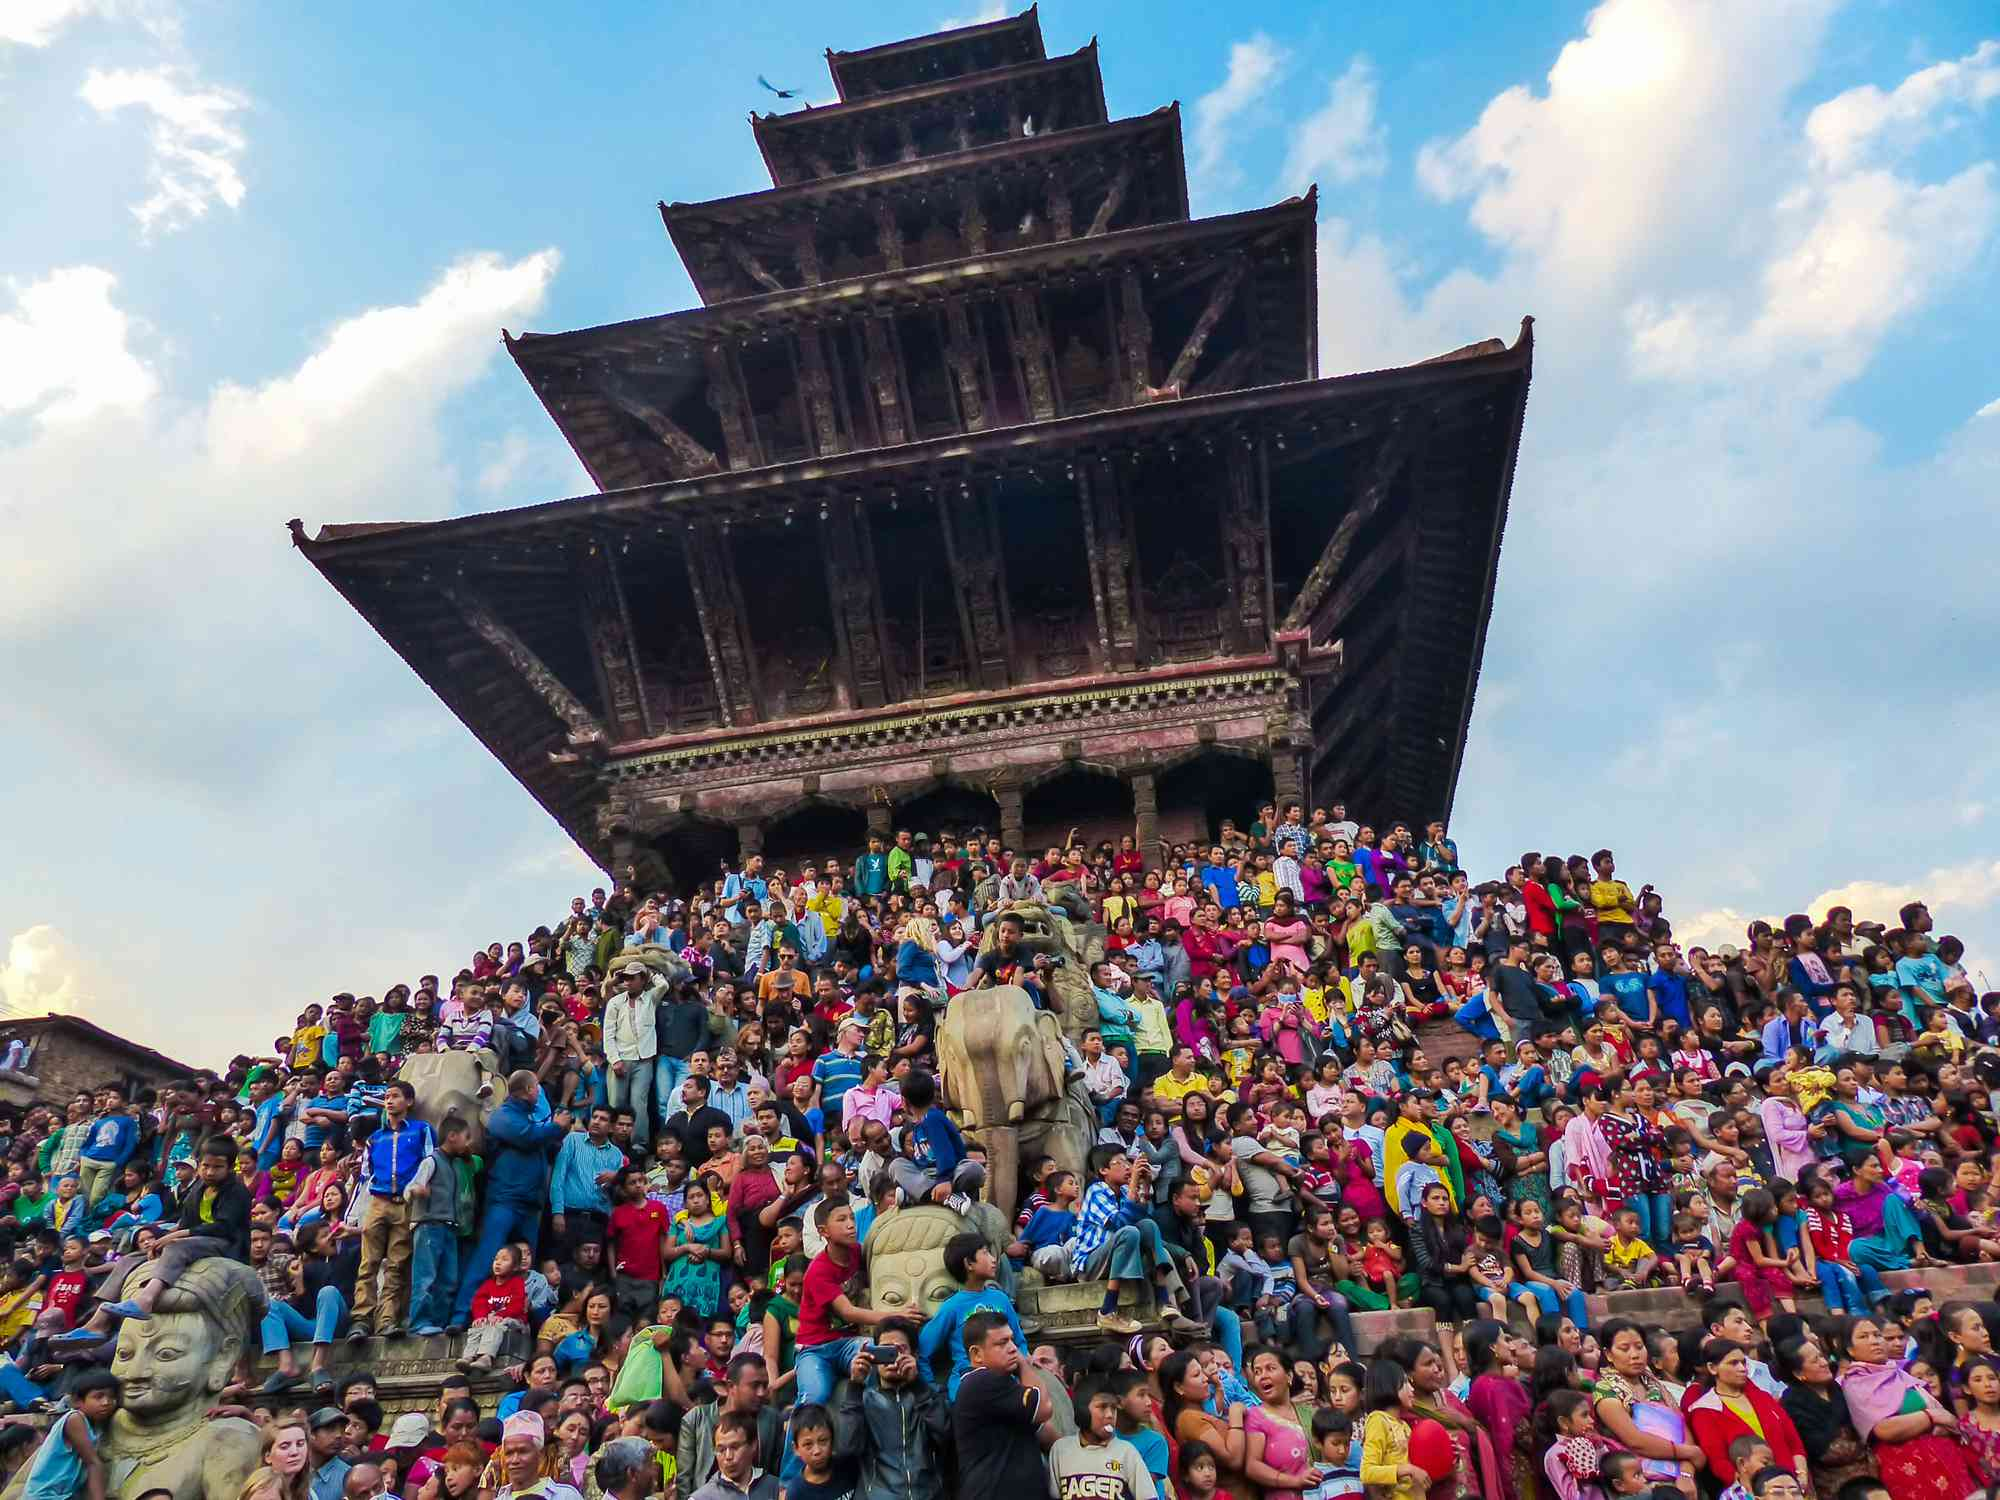 crowd of people beneath a tiered pagoda temple